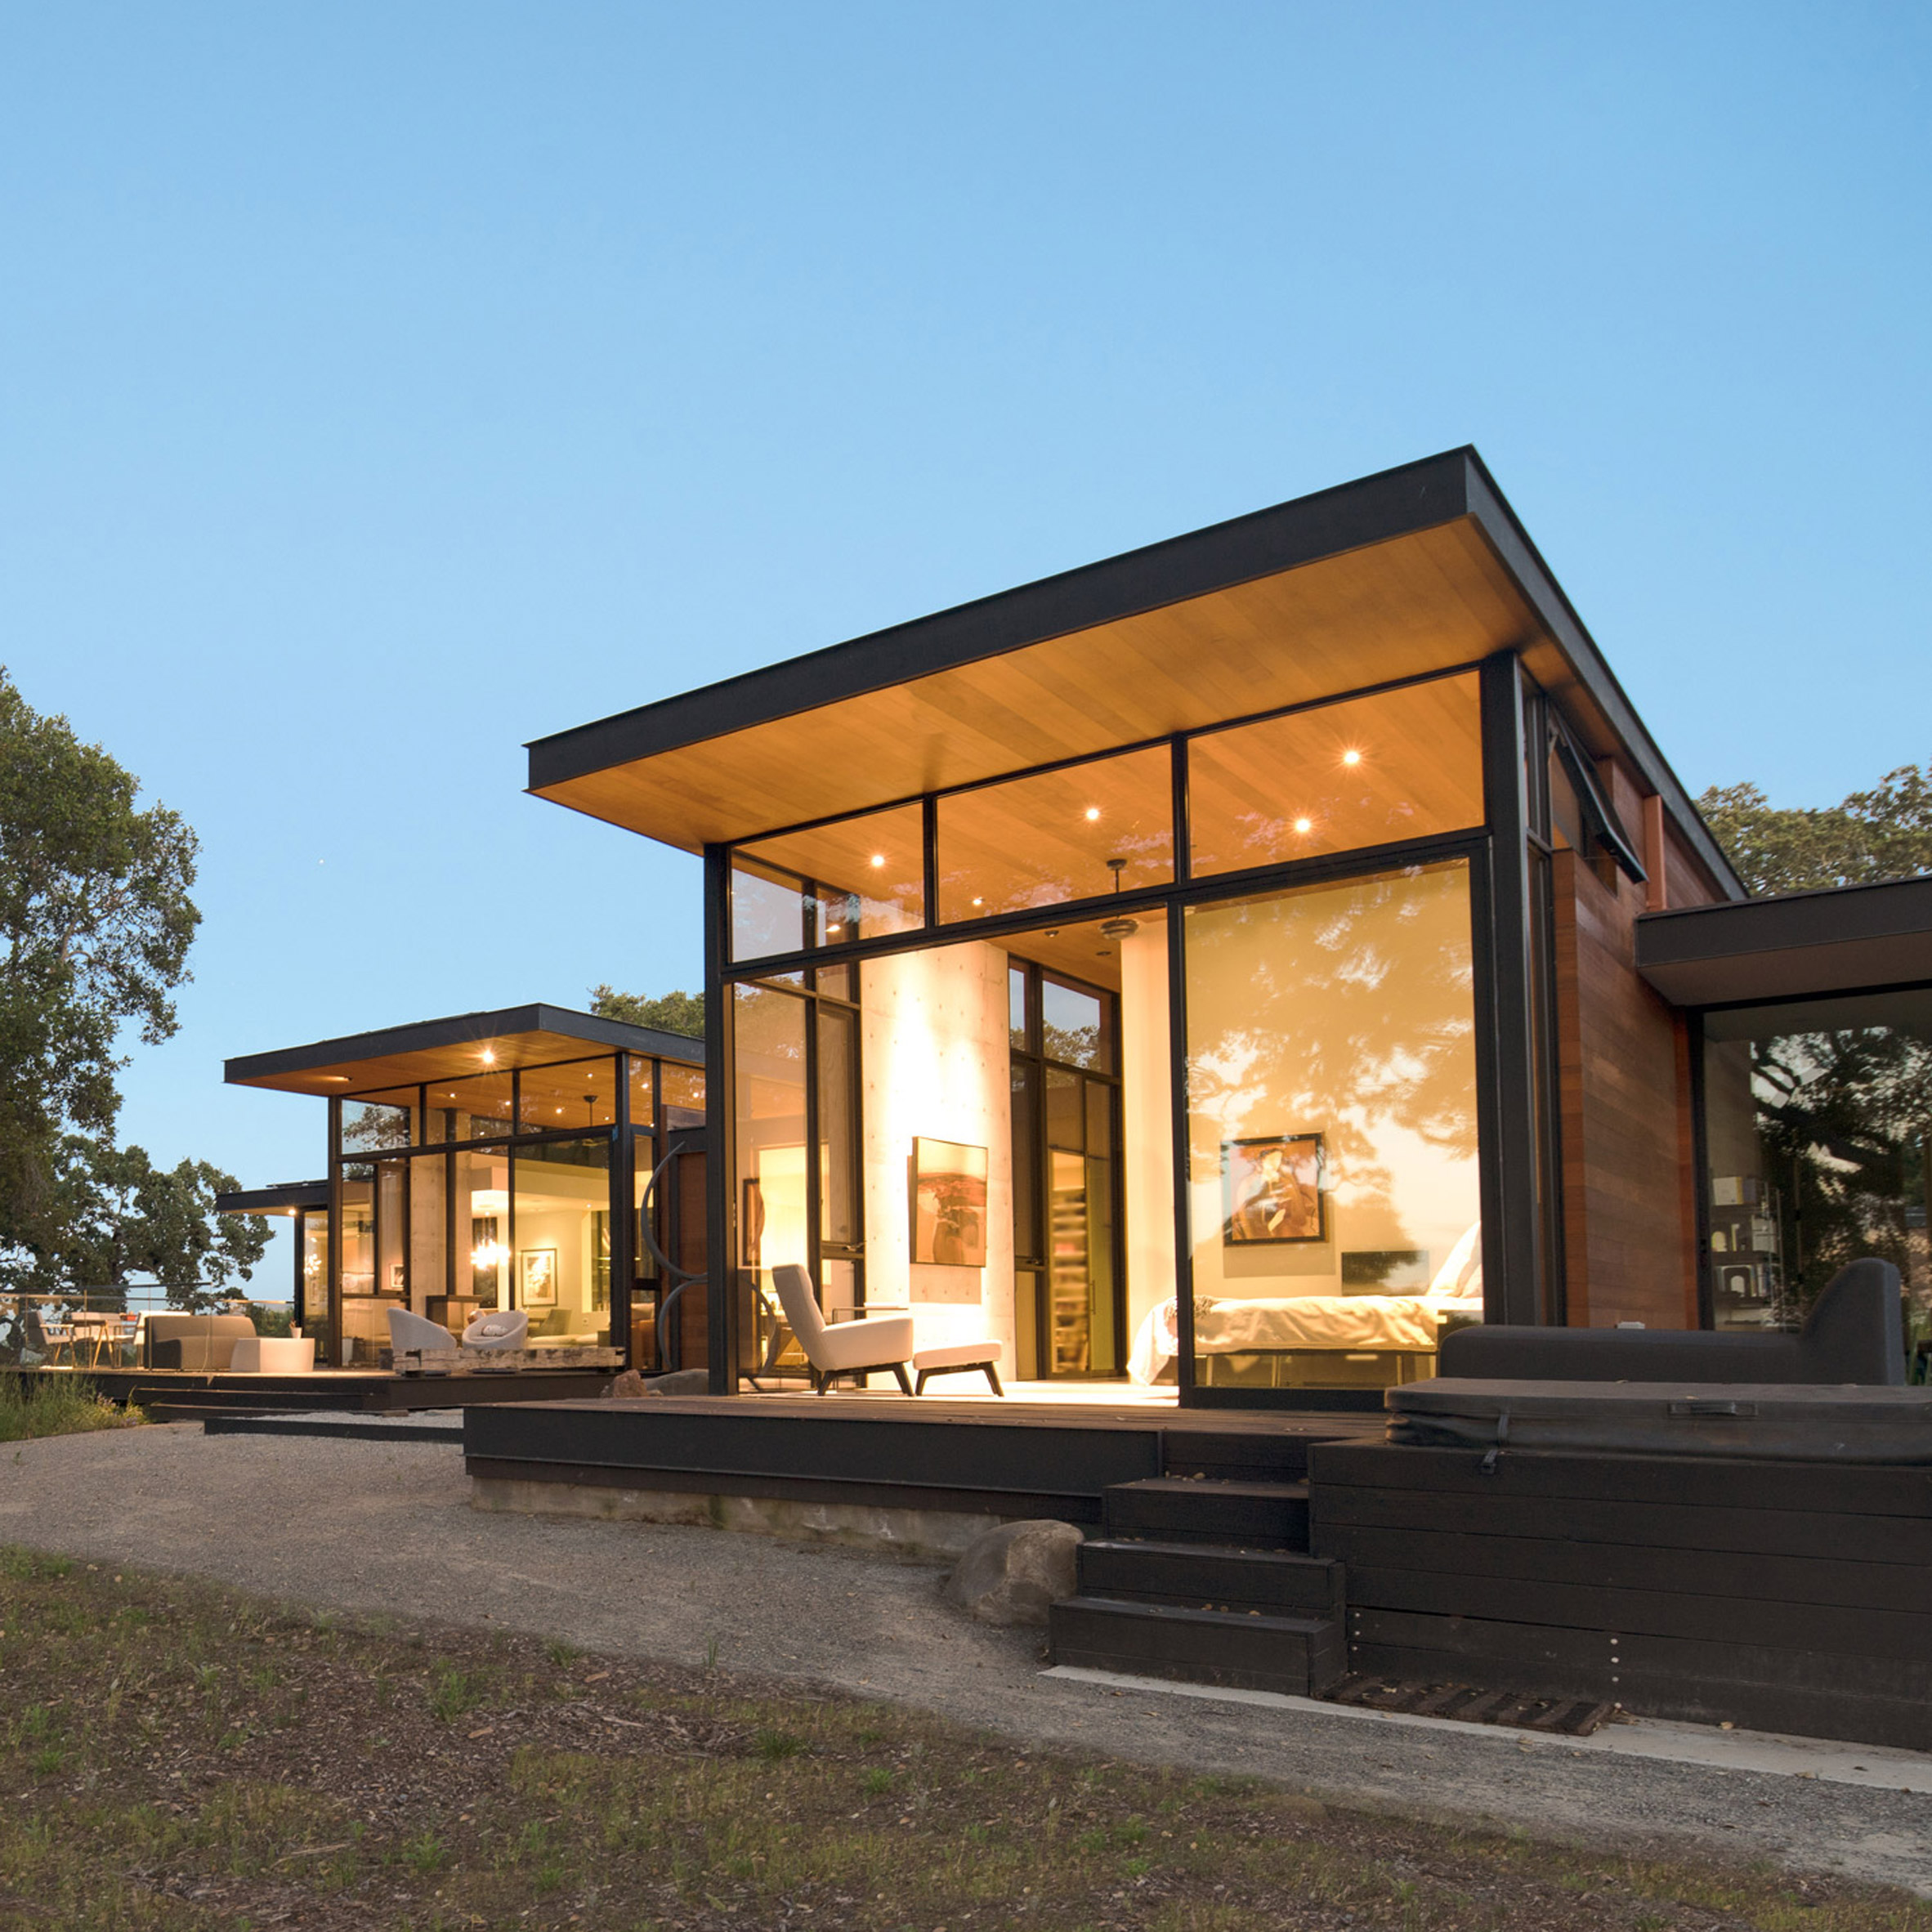 Oak trees inform design of northern California home by Field ...